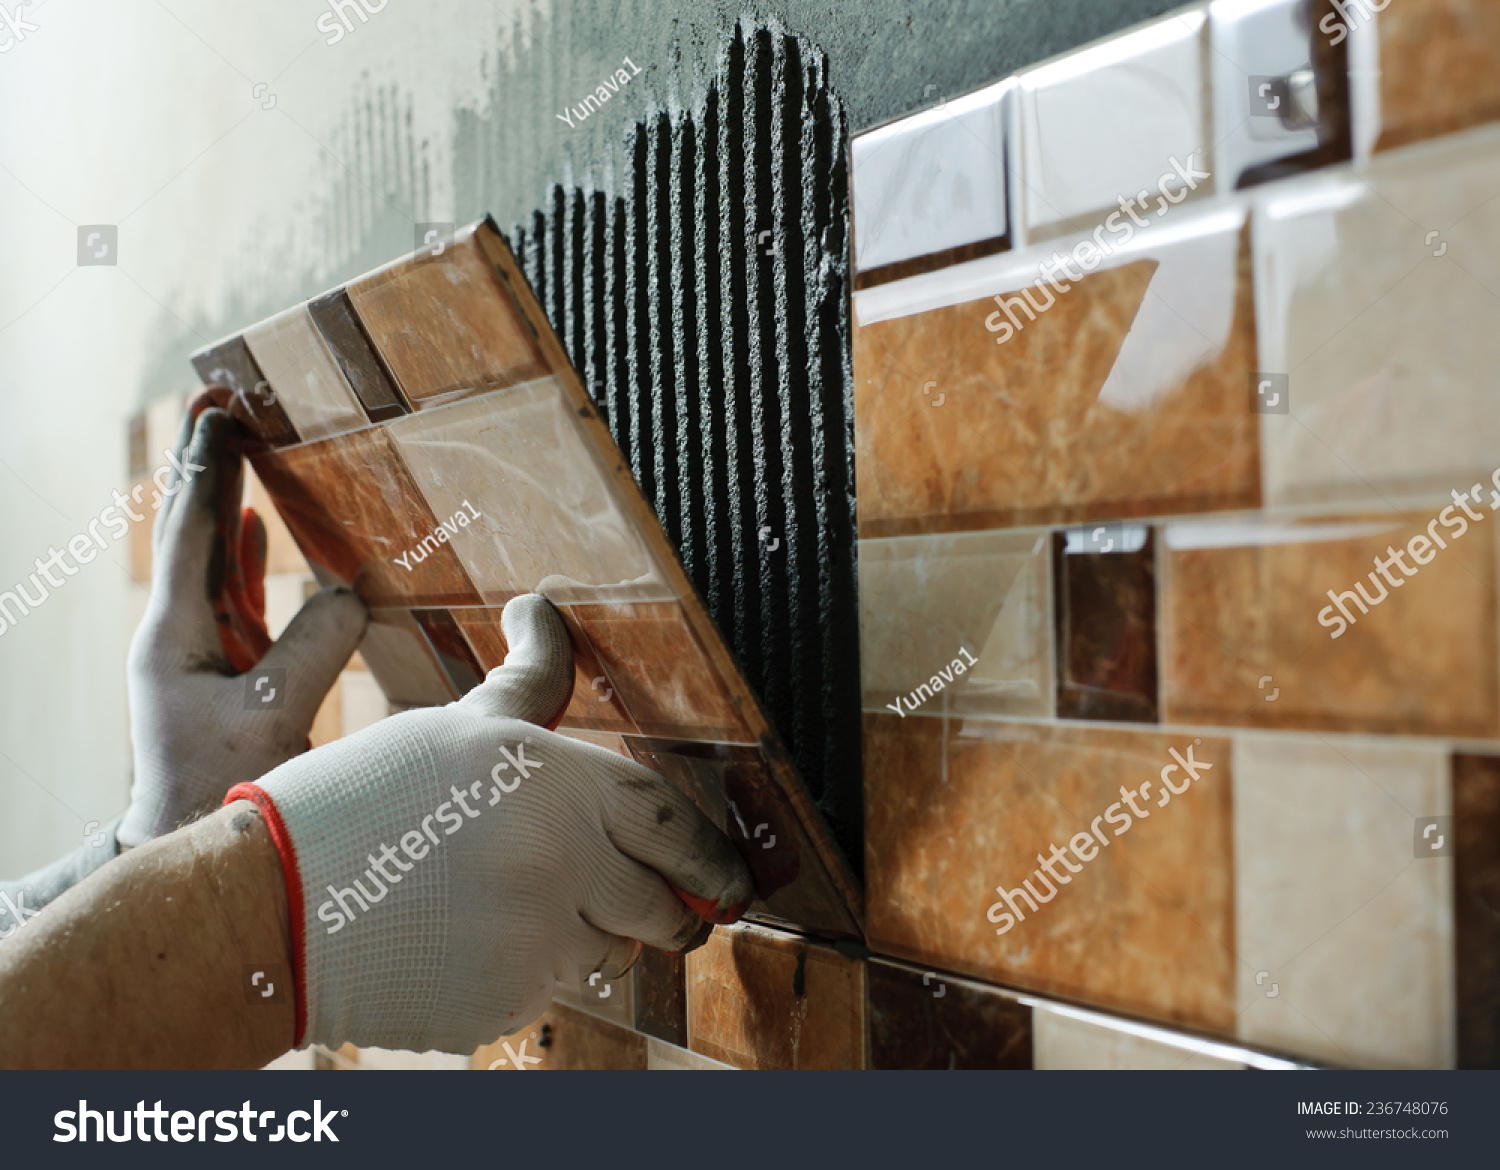 Laying ceramic tiles tiler placing ceramic stock photo royalty free laying ceramic tiles tiler placing ceramic wall tile in position over adhesive dailygadgetfo Gallery